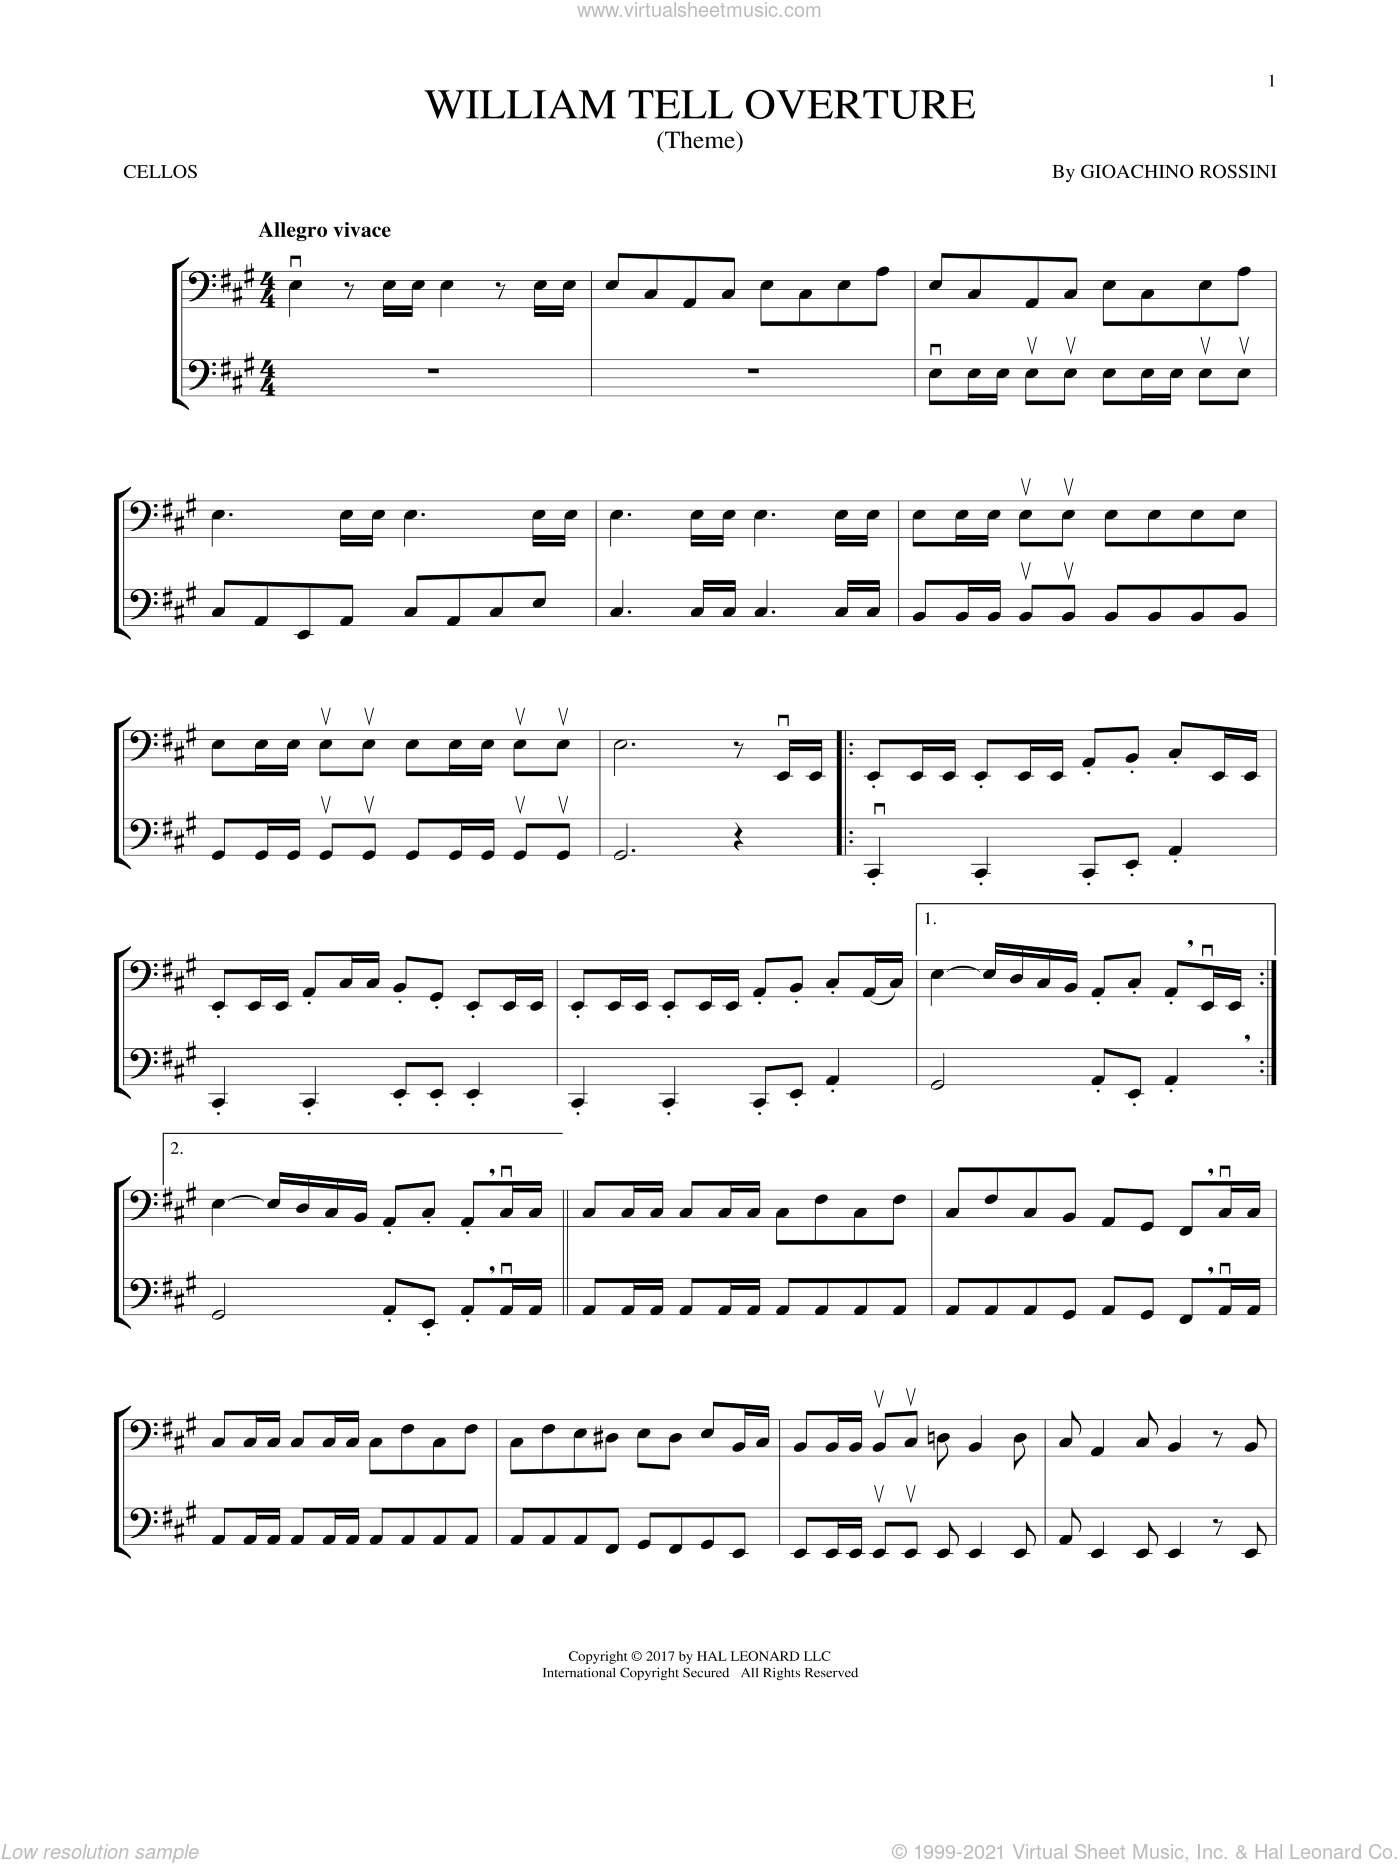 William Tell Overture sheet music for two cellos (duet, duets) by Rossini, Gioacchino, classical score, intermediate skill level